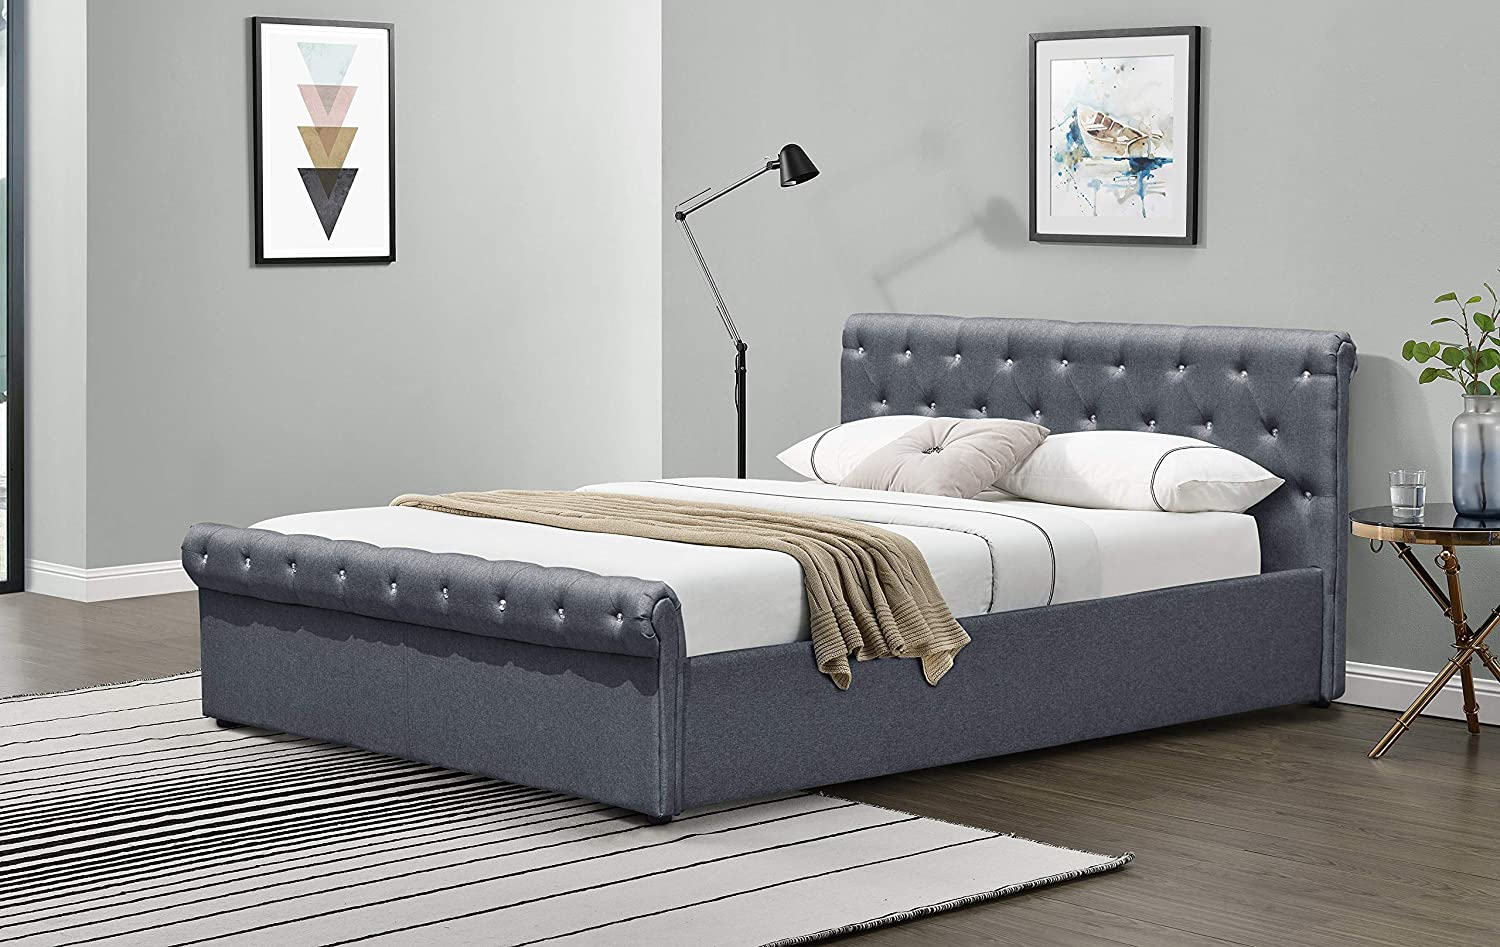 4FT6 Double, Linen Grey Home Detail Chesterfield Bed Frame in Crushed Velvet or Linen Fabric Double or King Size